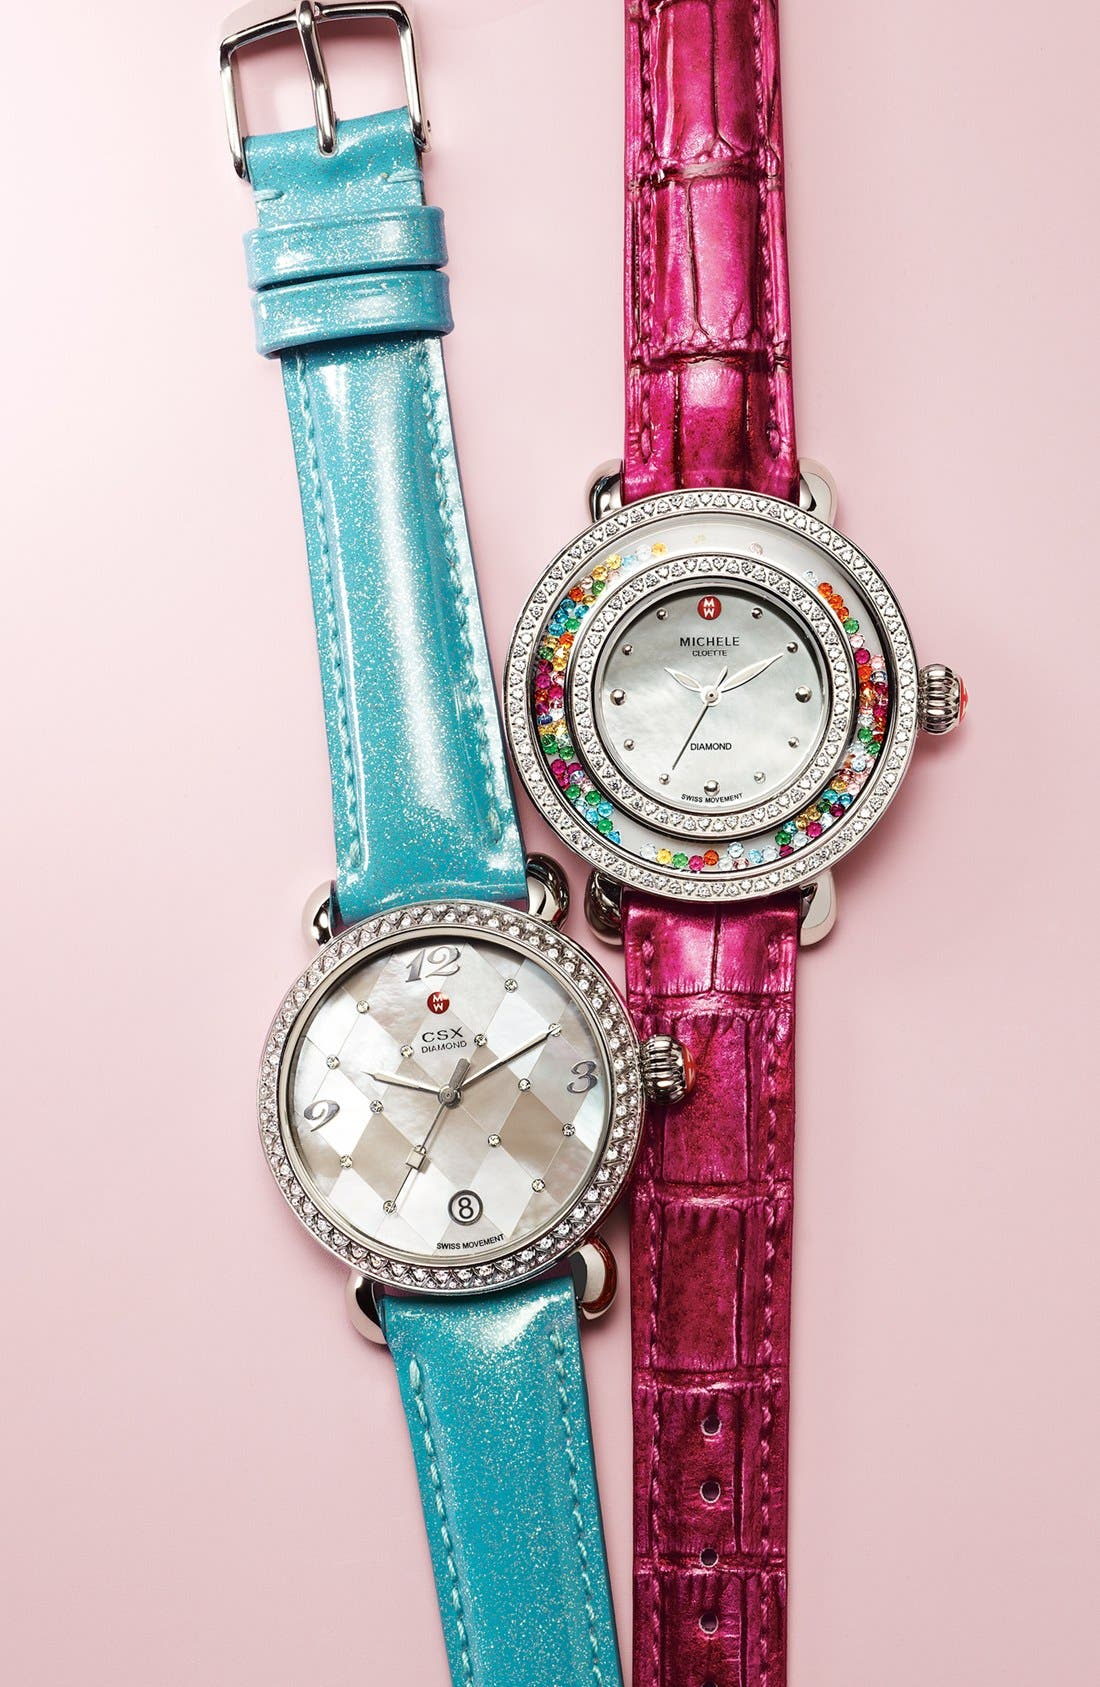 Main Image - MICHELE 'Cloette Carnival' Customizable Watch